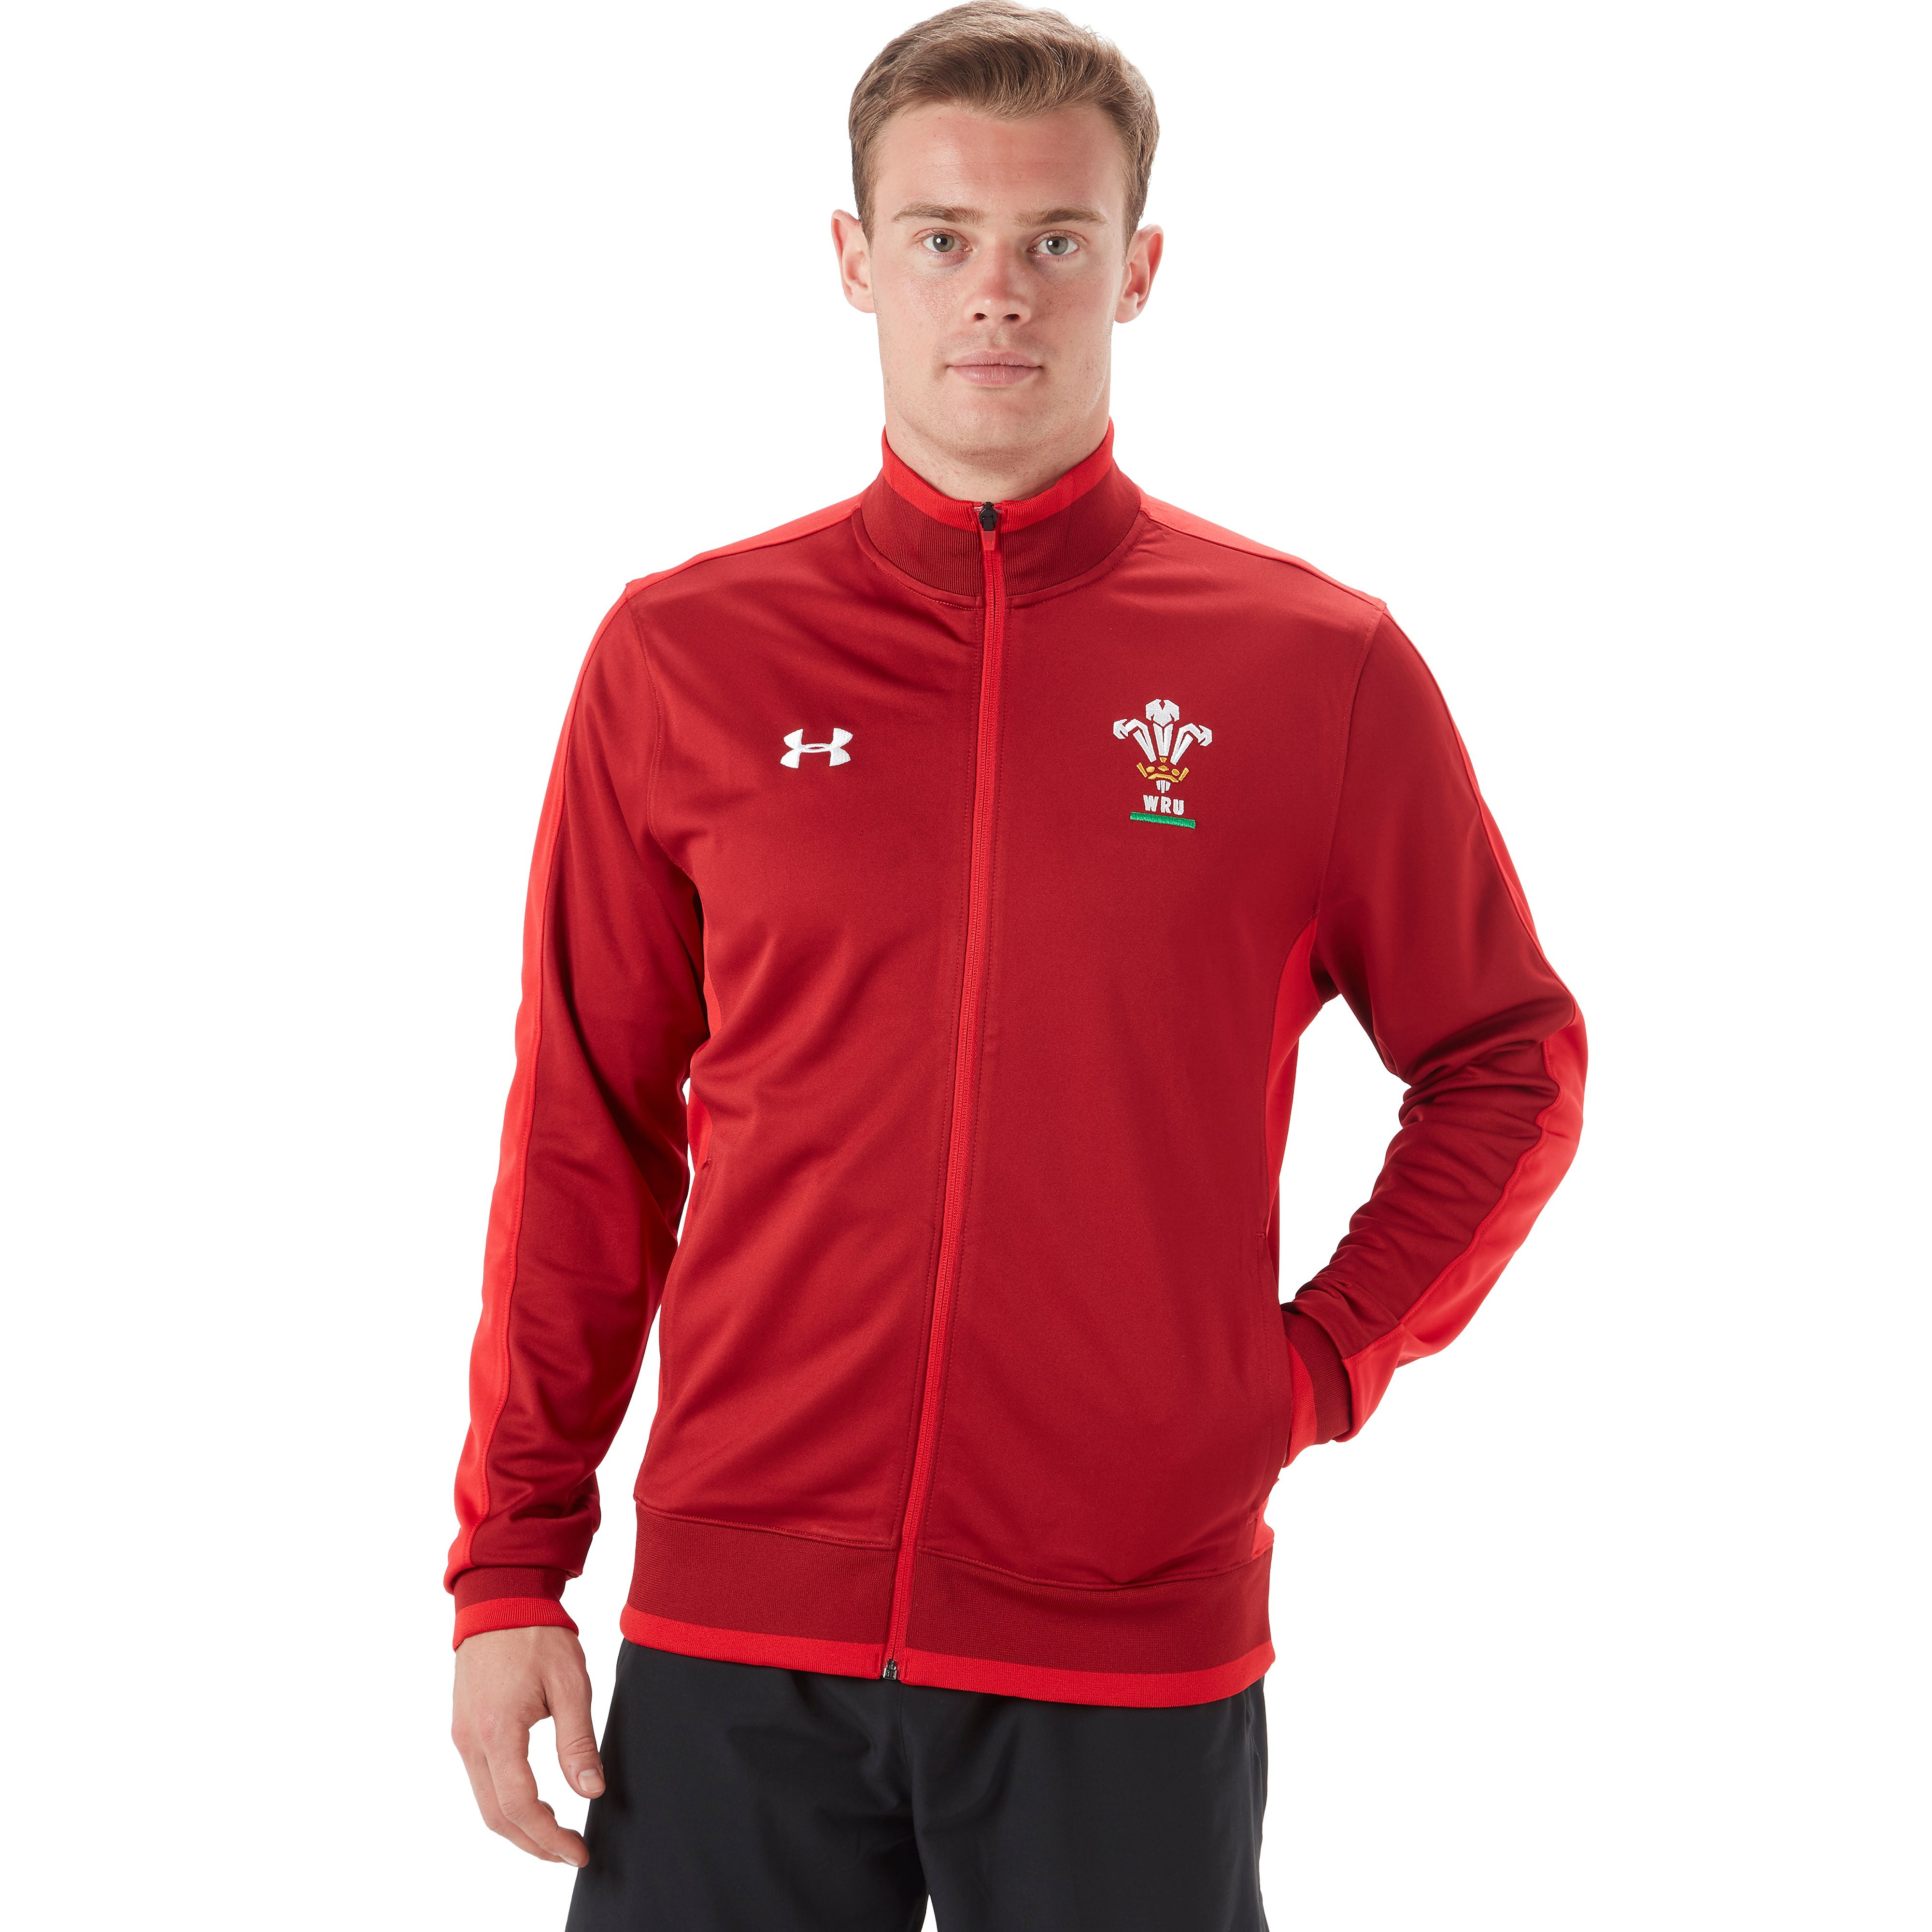 Under Armour Wales RU Men's Track Jacket